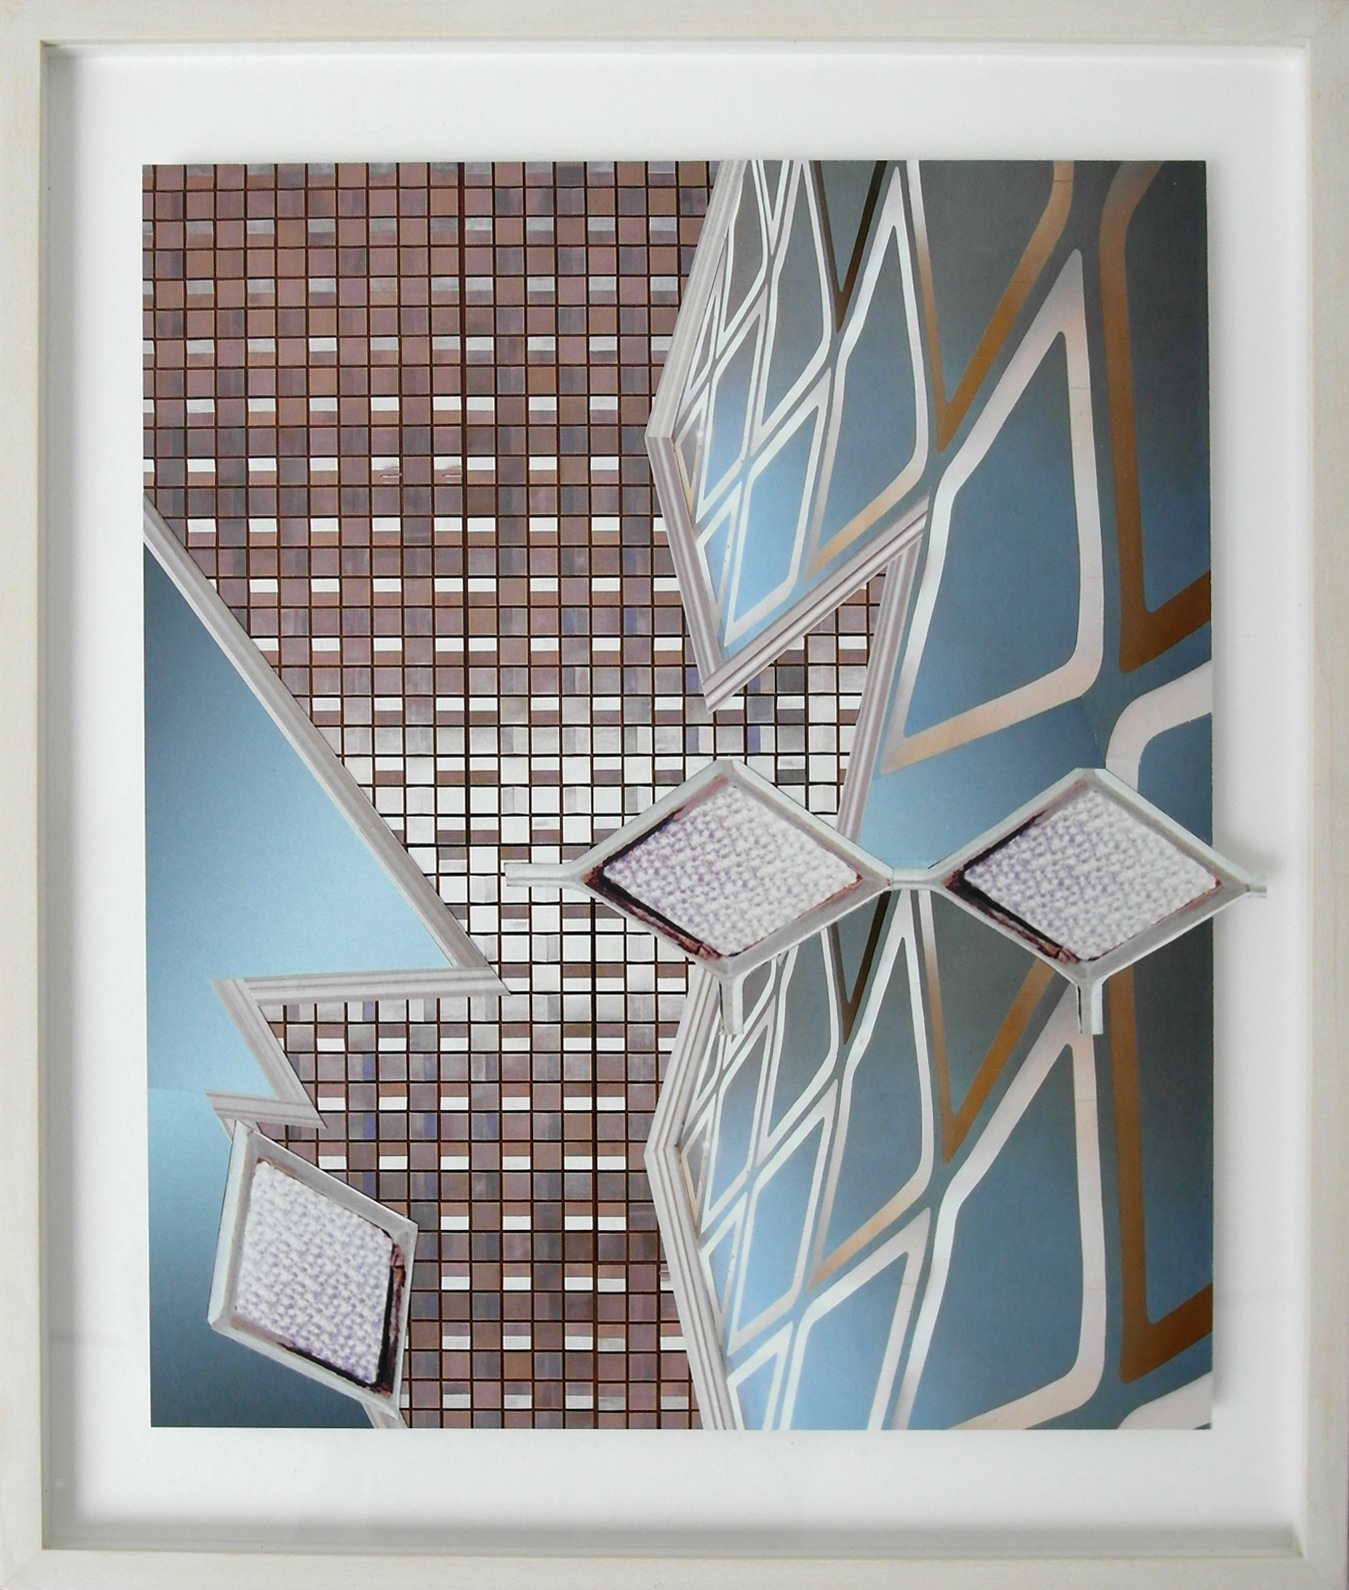 Untitled (Ponti ceiling) 2012 Collaged magazines, framed 44.7 x 37 cm / 17.5 x 14.5 in framed